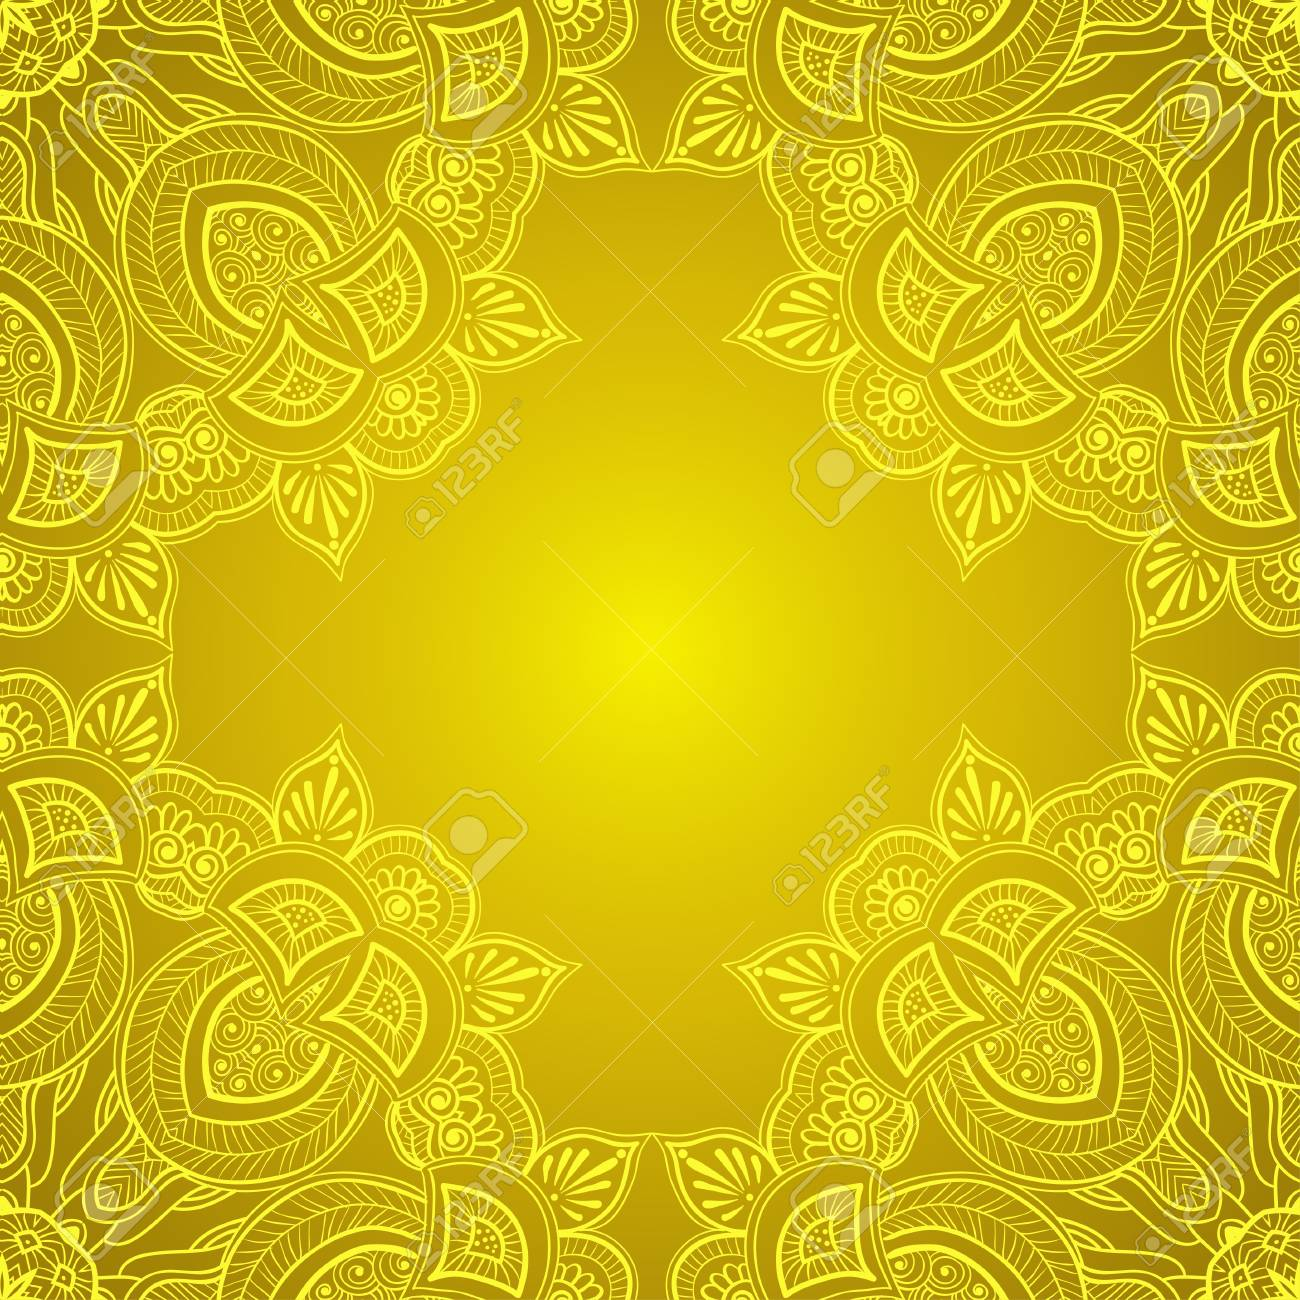 Vector Background For Celebrations, Holidays, Sewing, Arts, Crafts ...